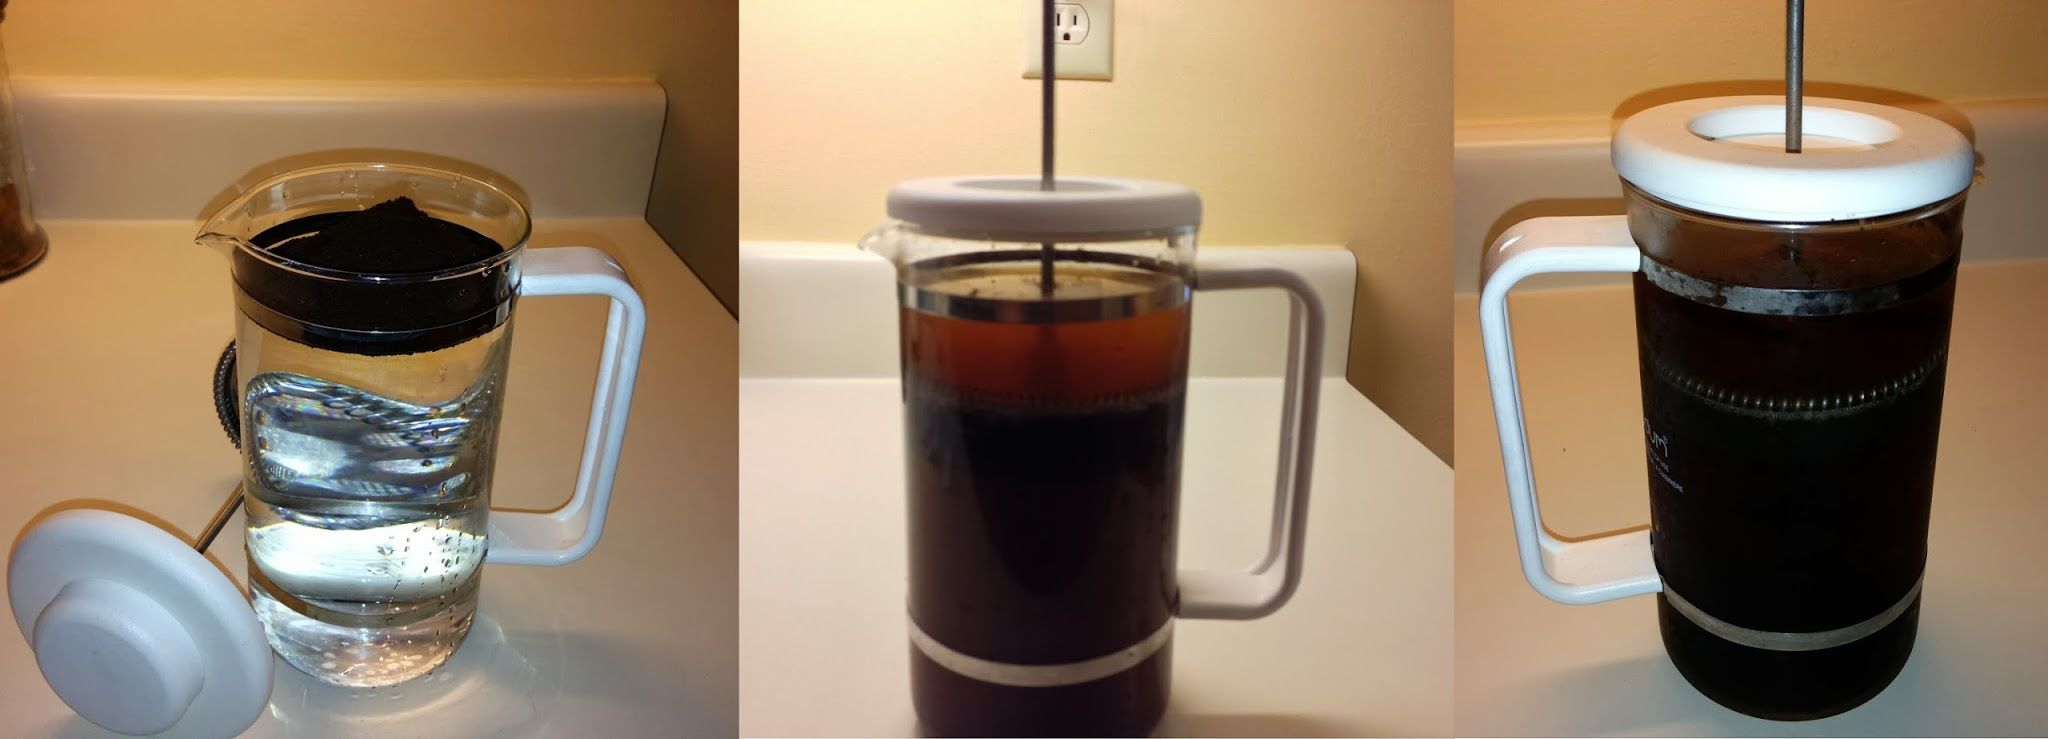 1) Using cold, filtered water, fill French Press. 2) Add 1